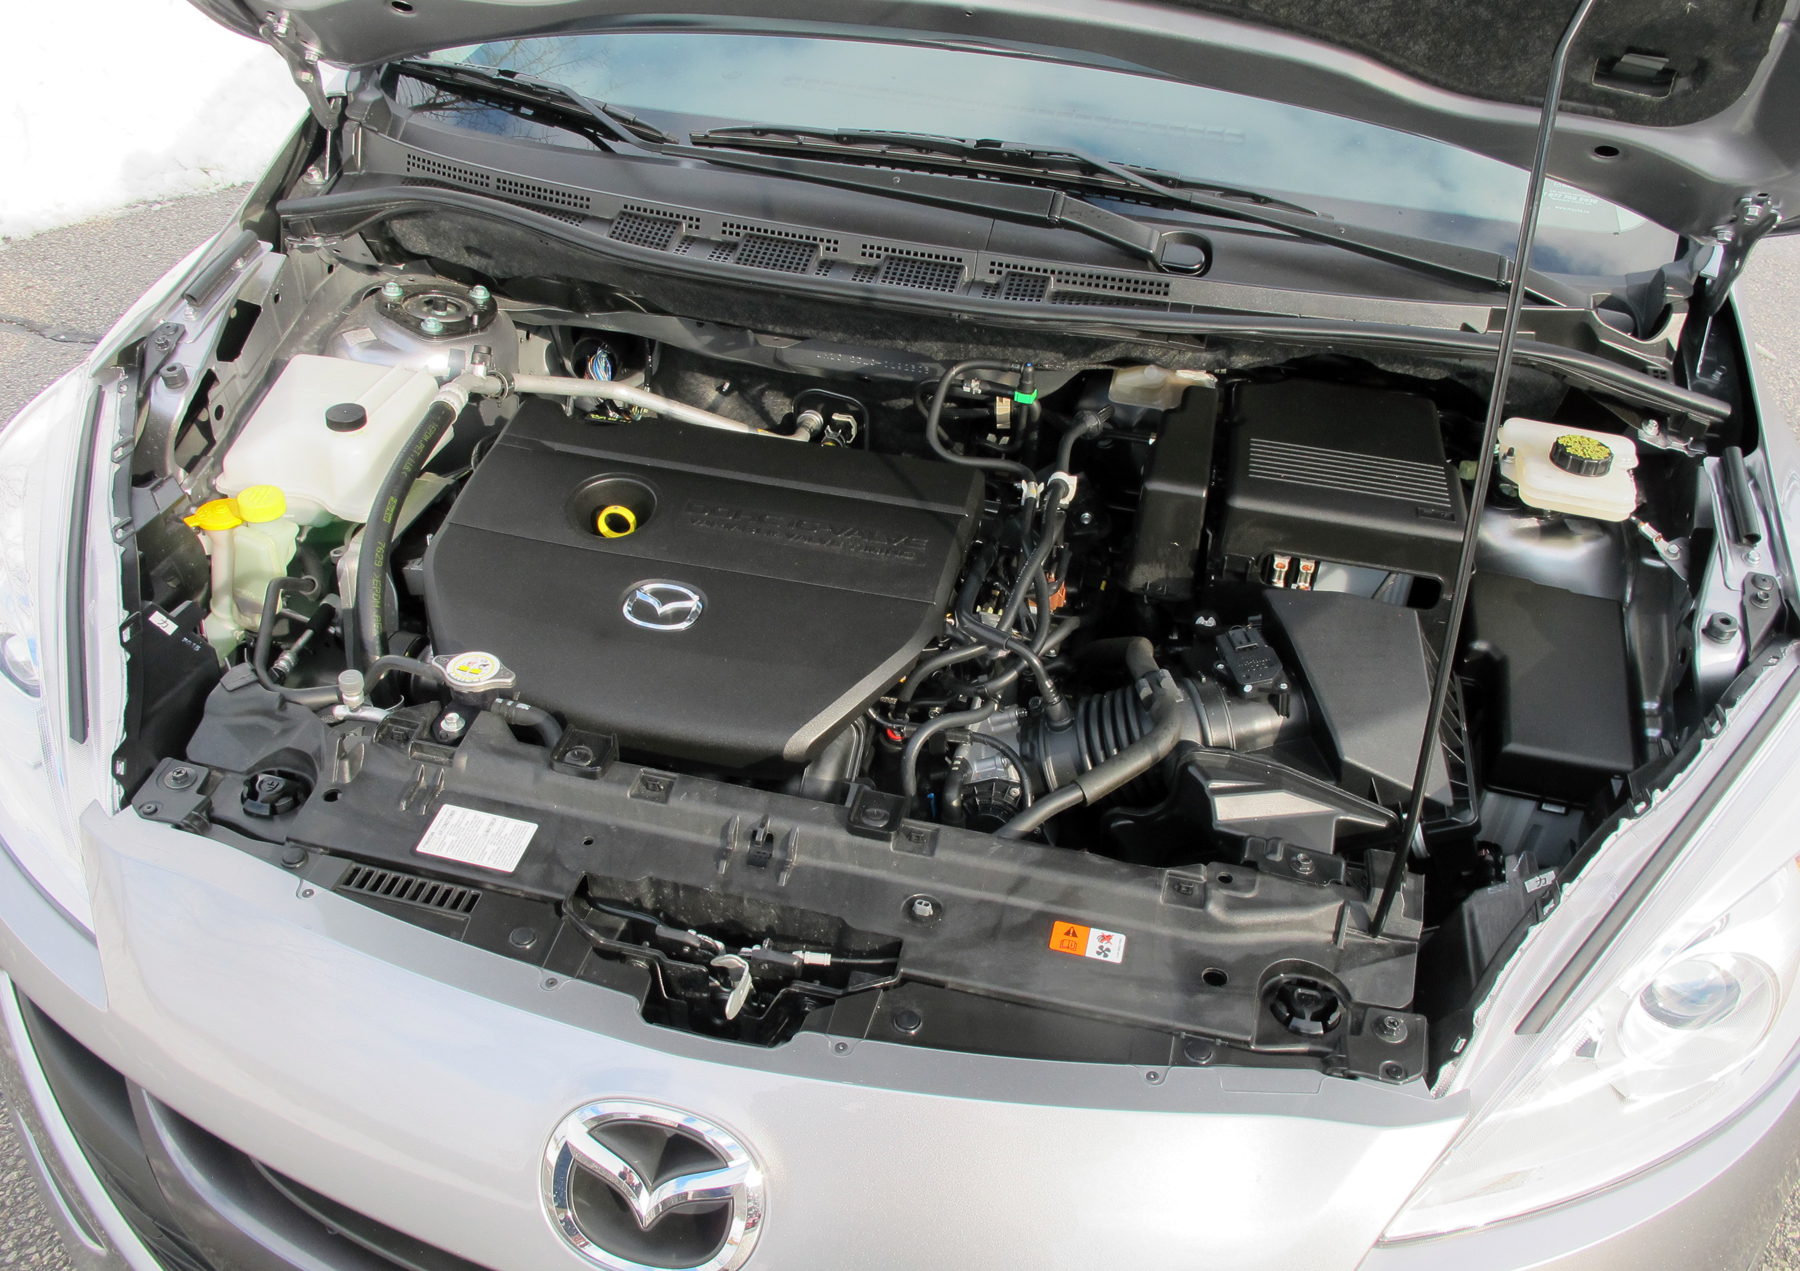 2004 Mazda 3 0 V6 Engine Diagram Archive Of Automotive Wiring 2006 Tribute Images Gallery Mazda5 Offers Solid Alternative To Crossovers Wheels Ca Rh